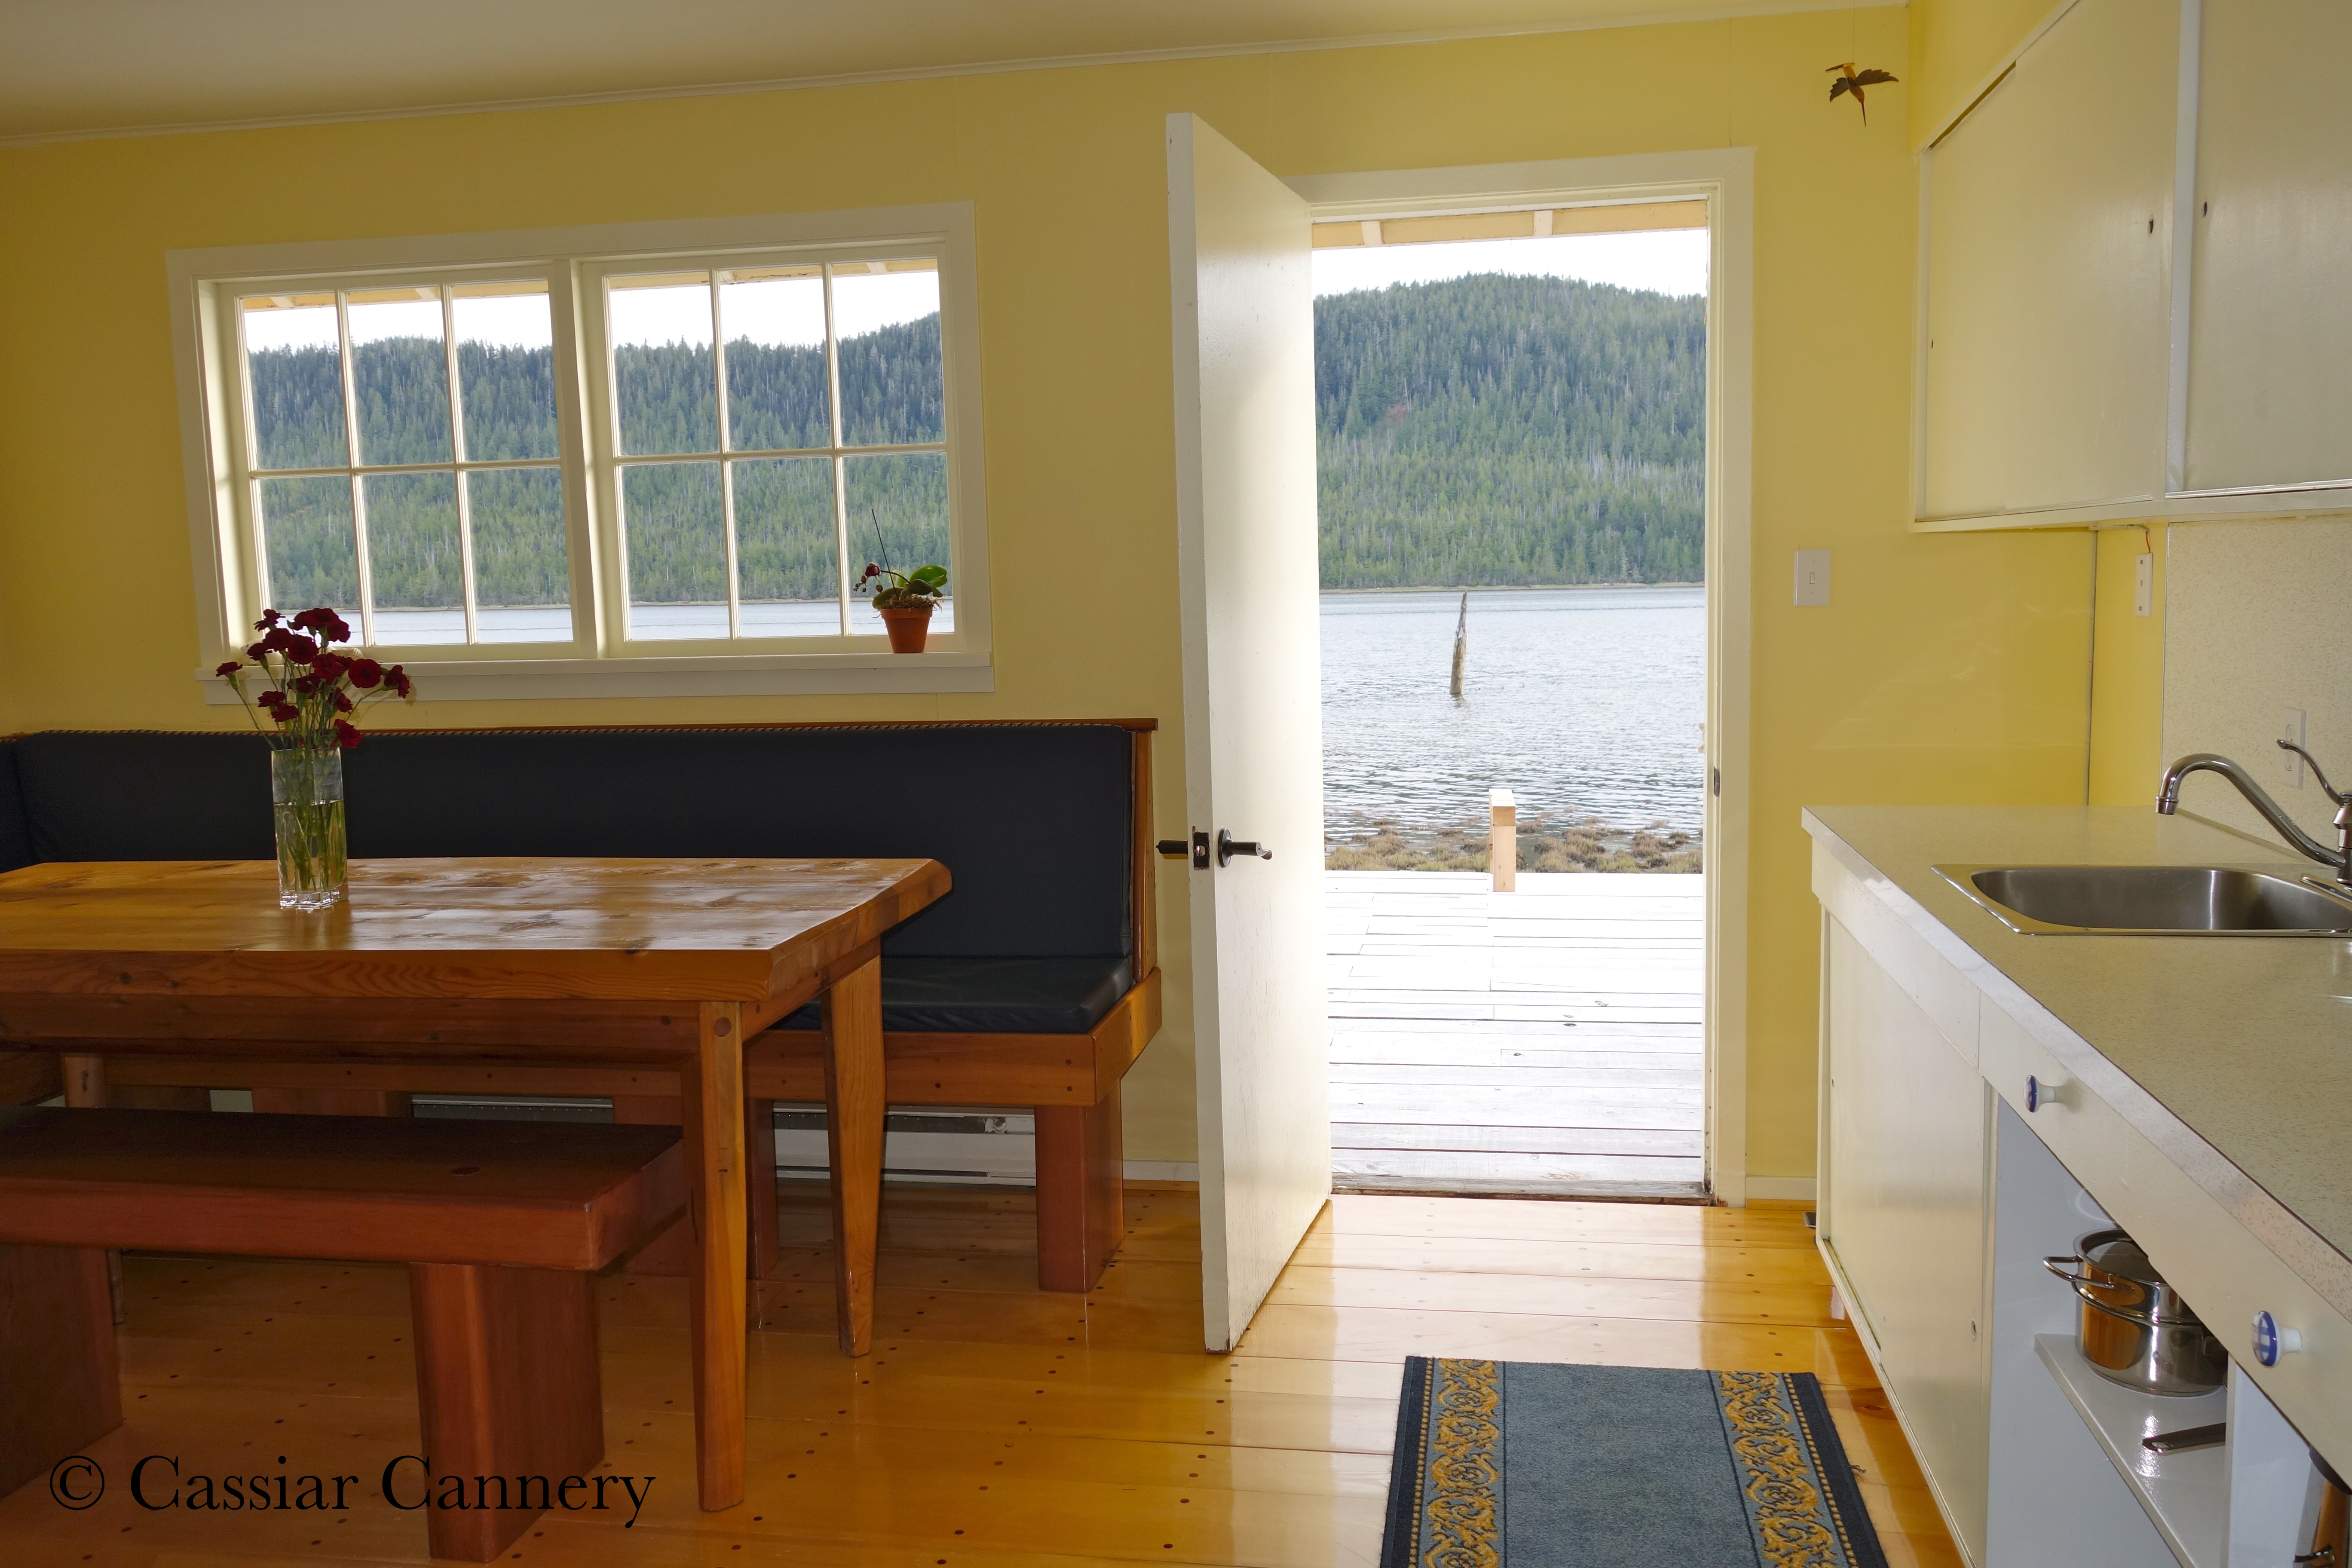 Cassiar Cannery - Steelhead House - galley style kitchen and eating area